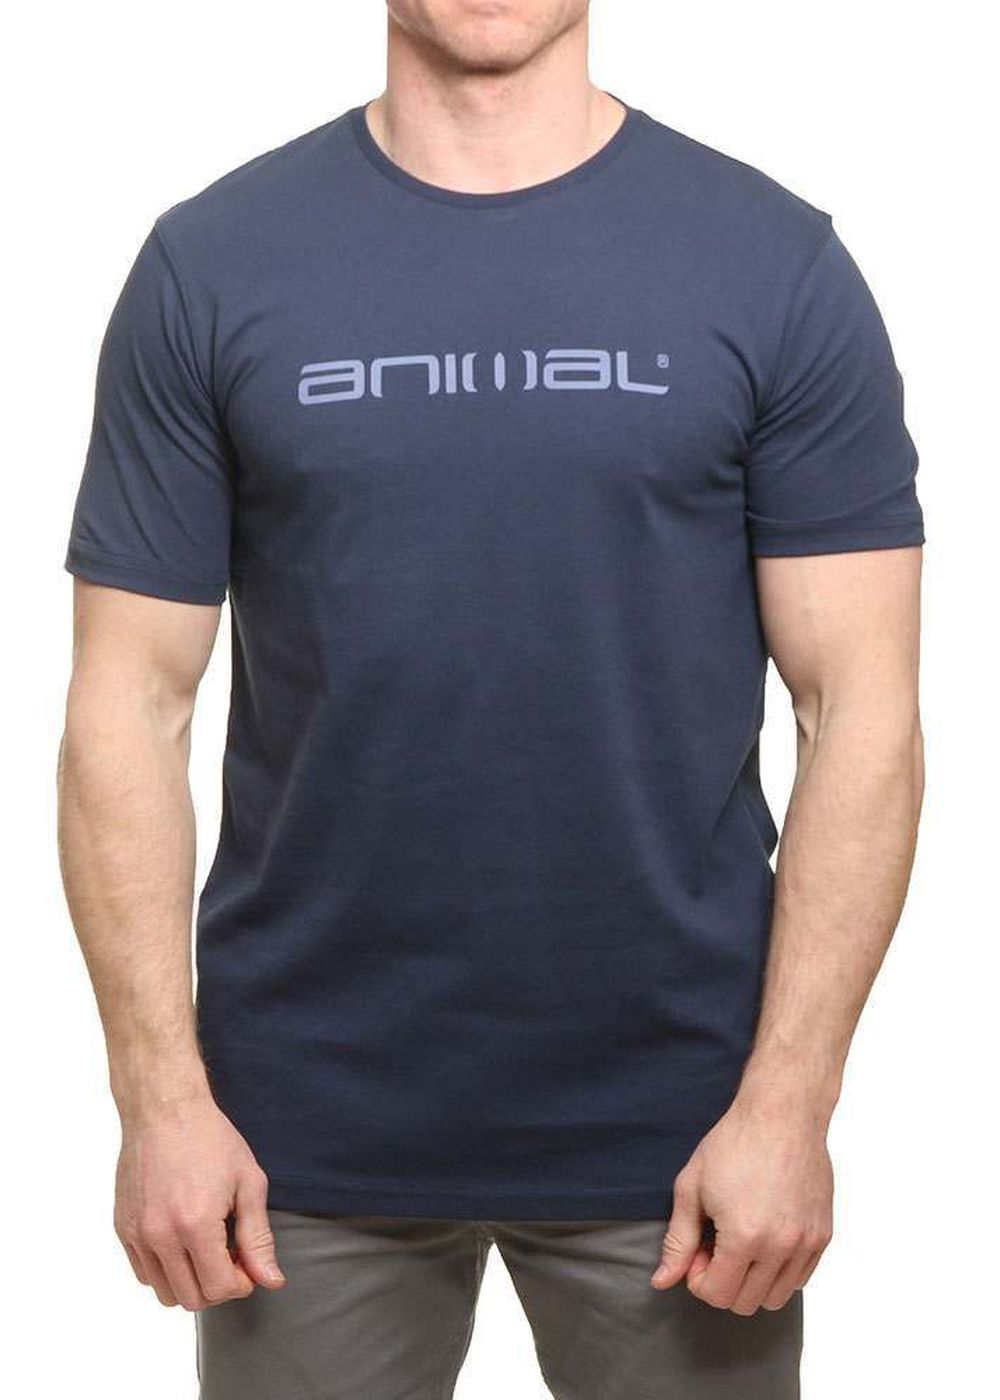 Animal Classico Tee Dark Navy